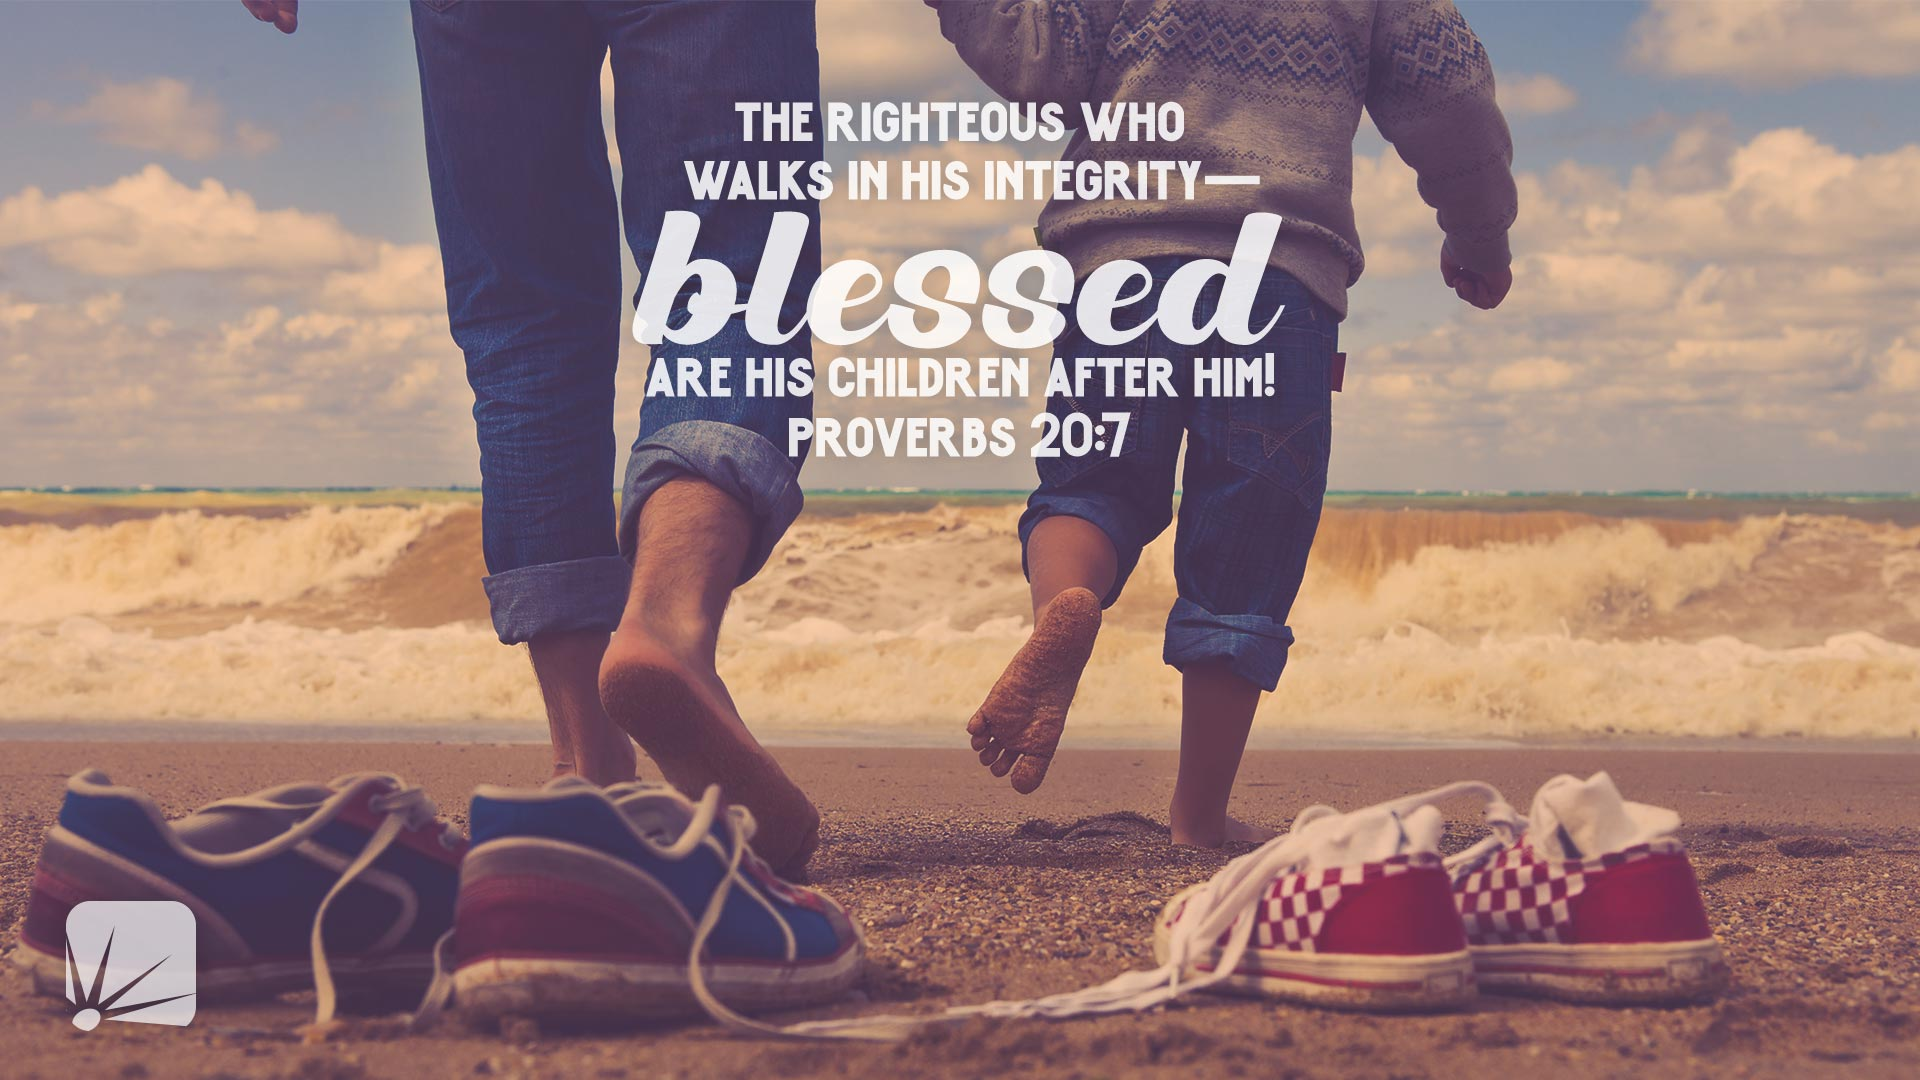 The righteous who walks in his integrity--blessed are his children after him!